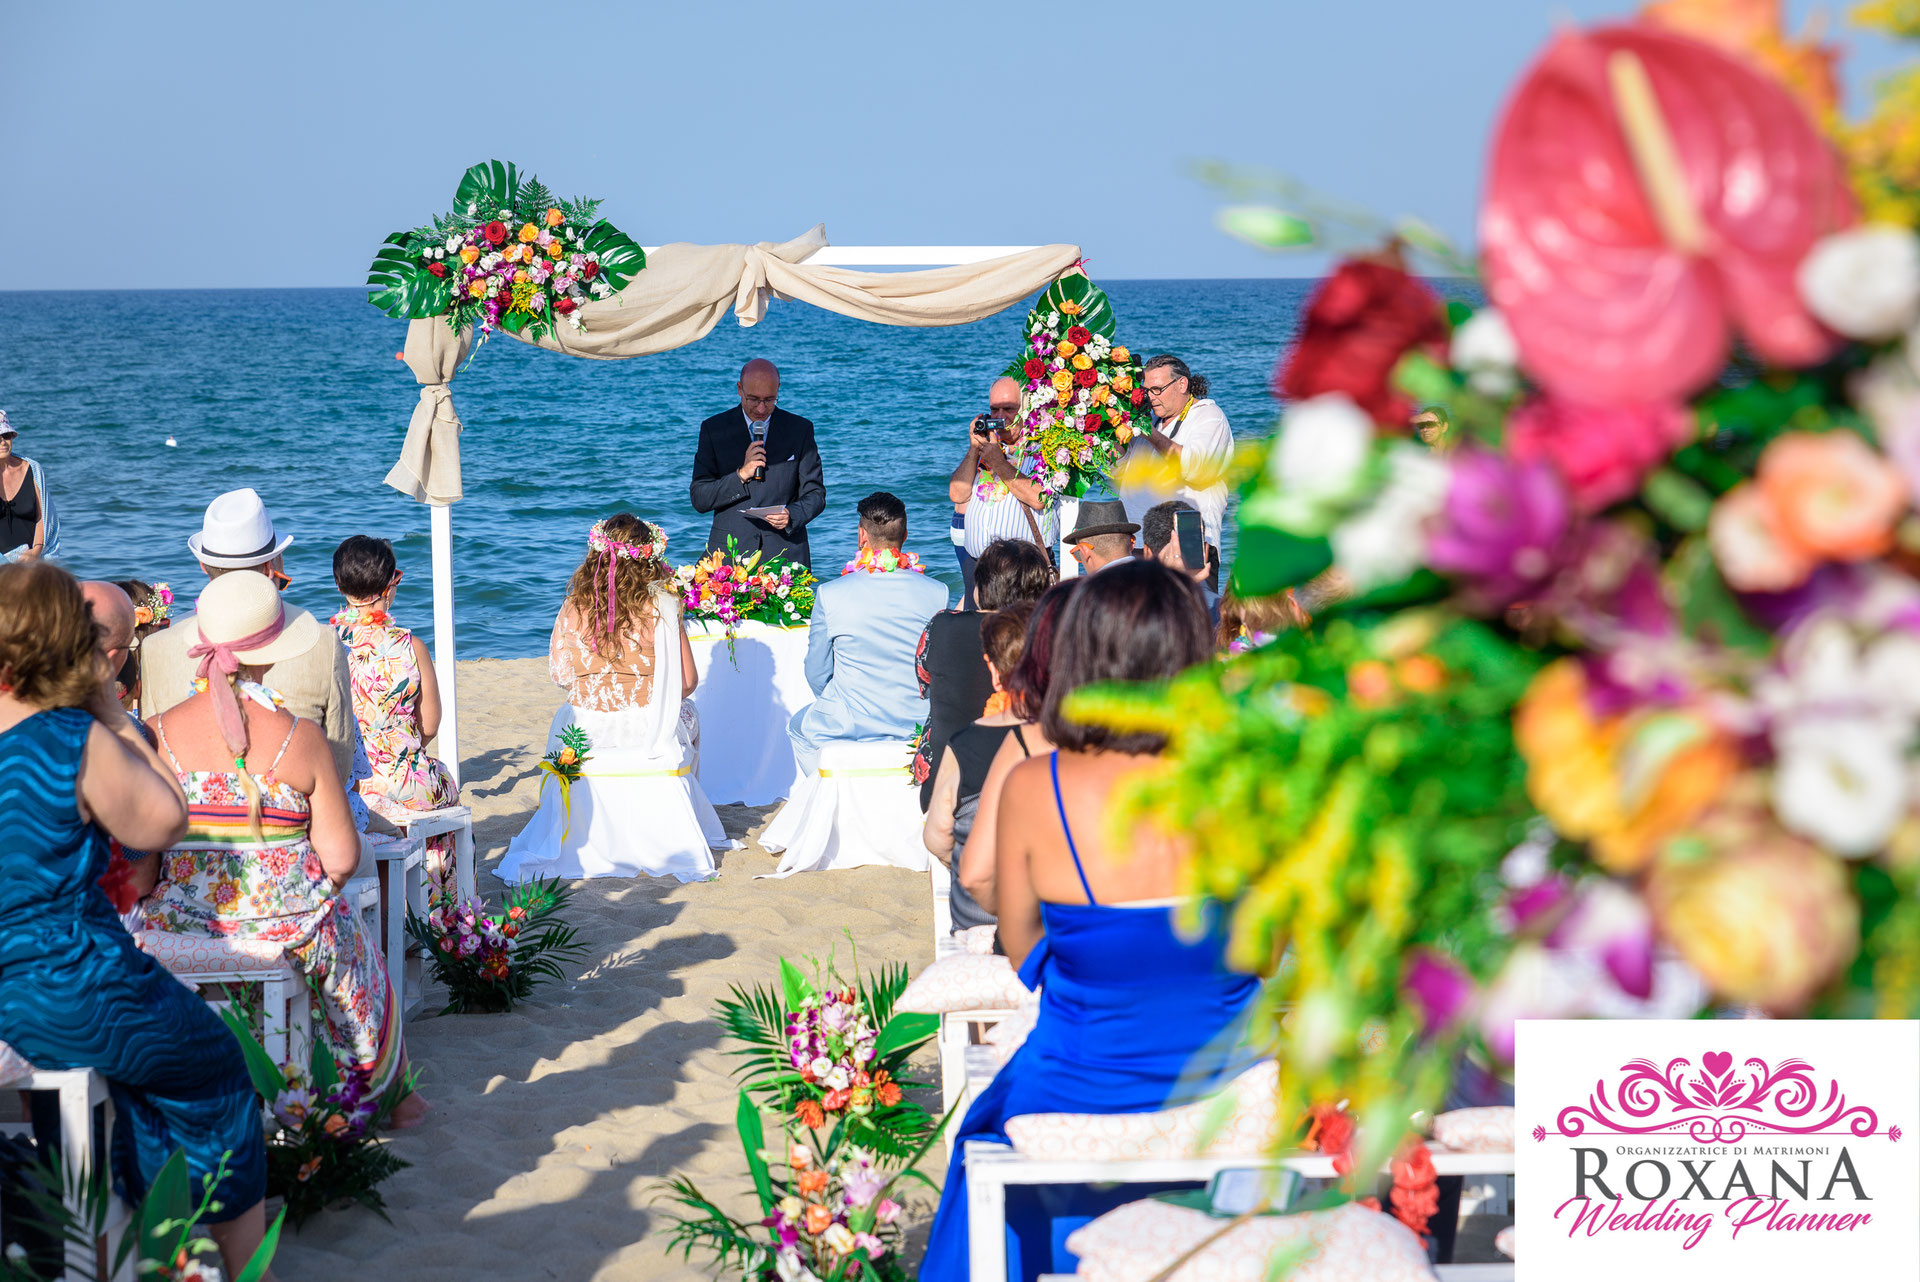 Matrimonio In Spiaggia Hawaii : Matrimonio in spiaggia sicilia beach wedding roxana